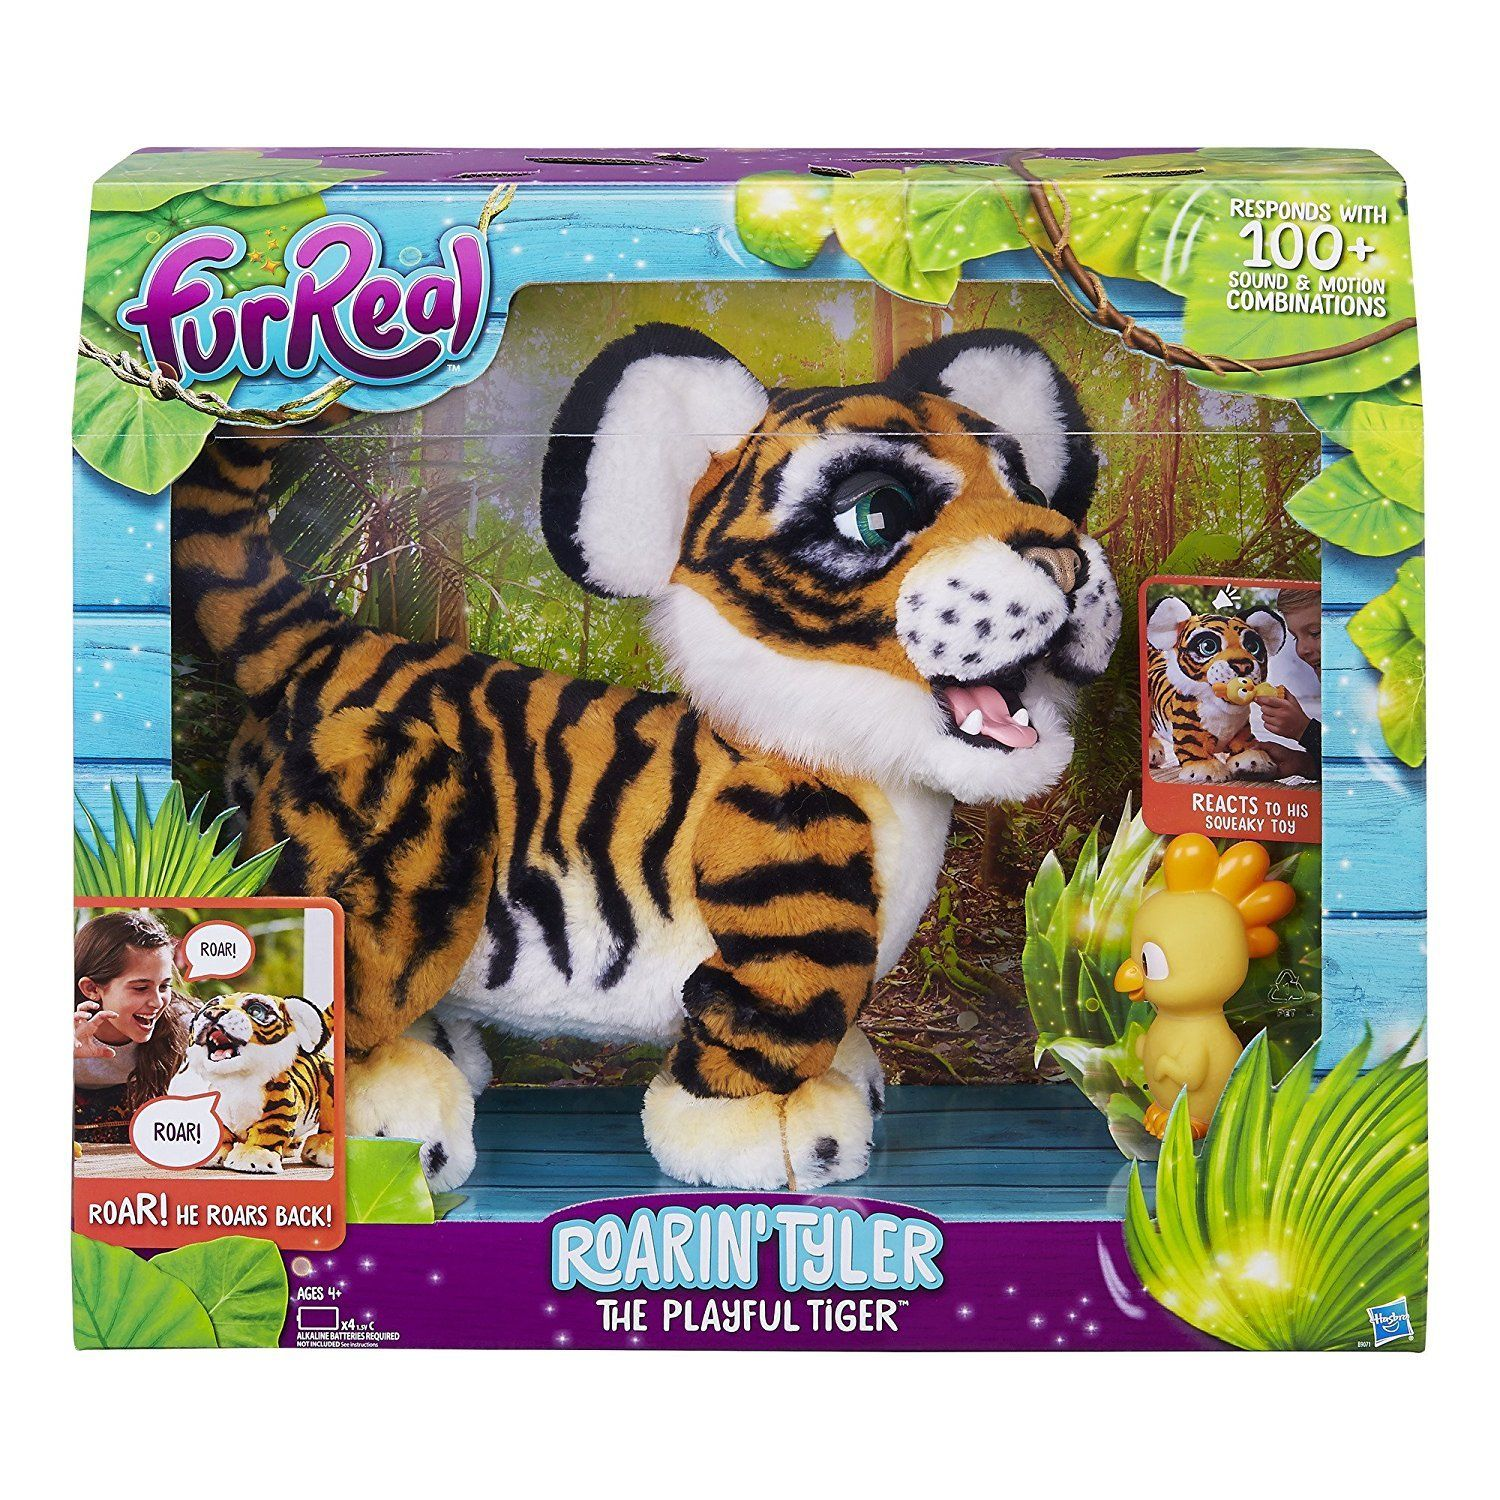 Tyler Roaring Tiger by Furreal Pets (With images) Fur